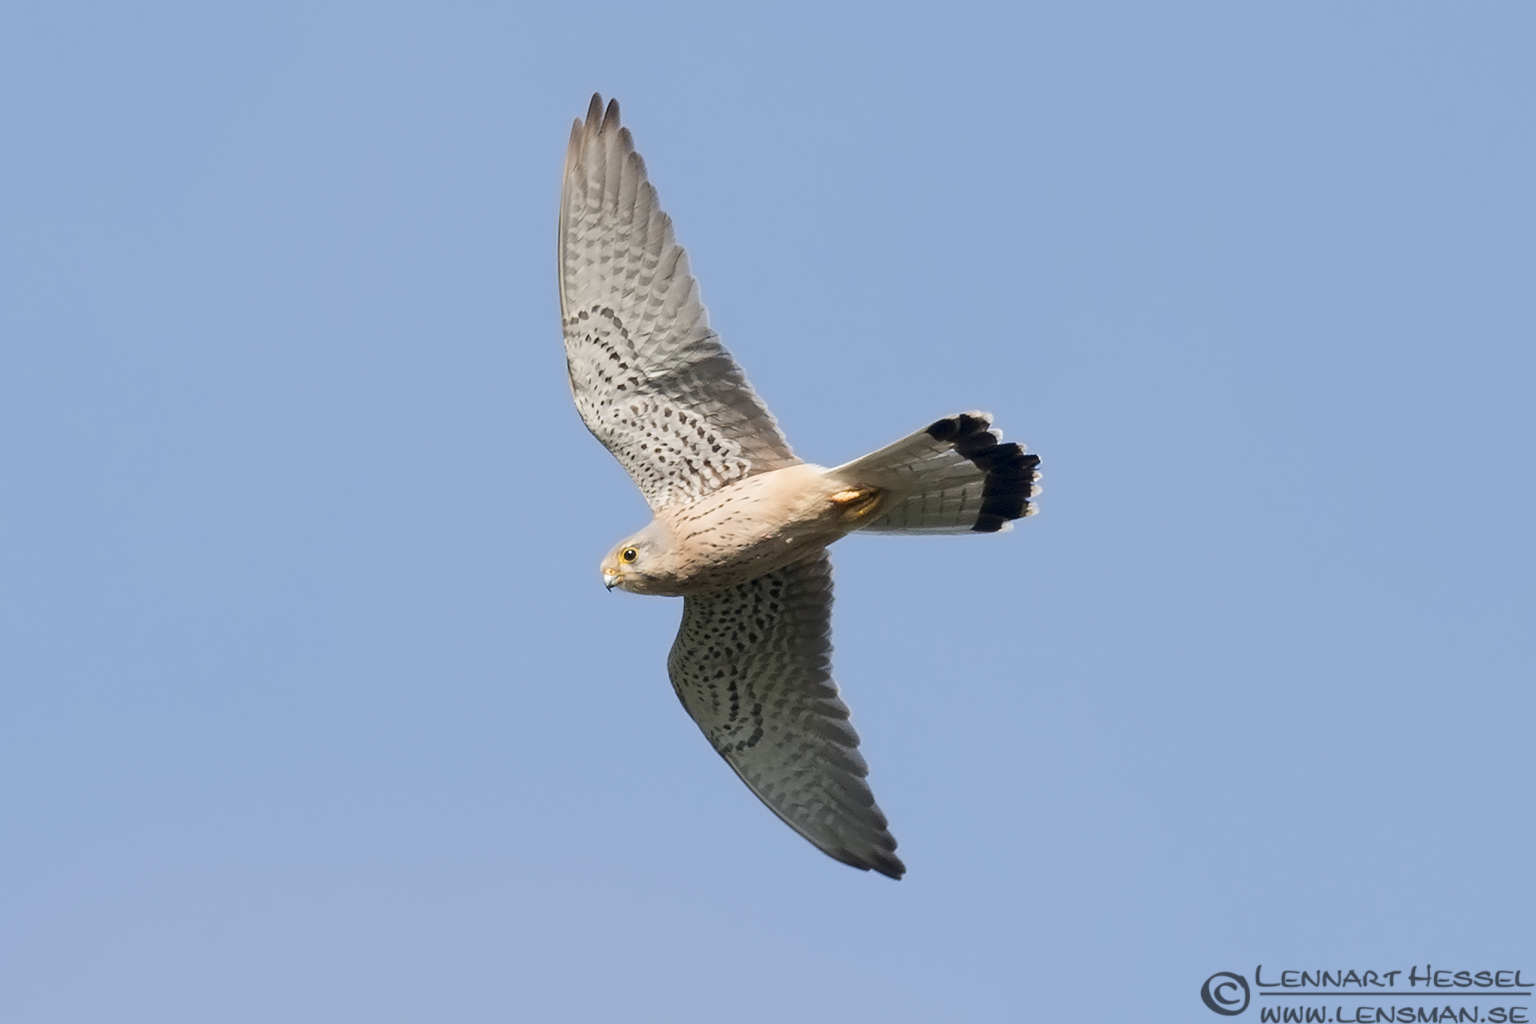 Common Kestrel in Bulgaria